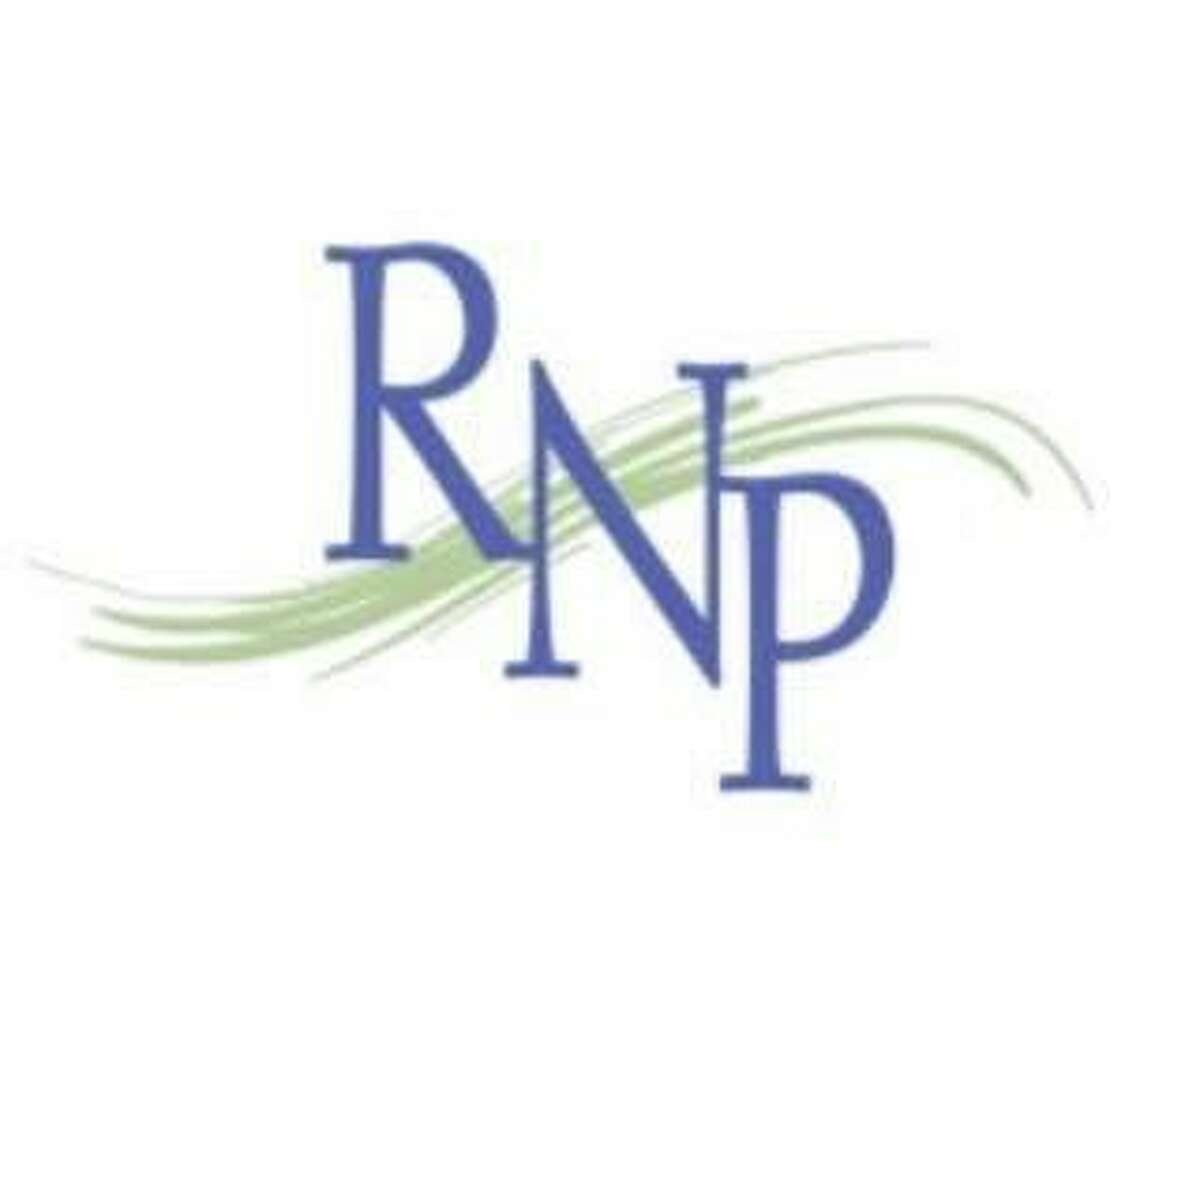 Recovery Network of Programs (RNP) will receive a $4 million grant from the Department of Health and Human Services.